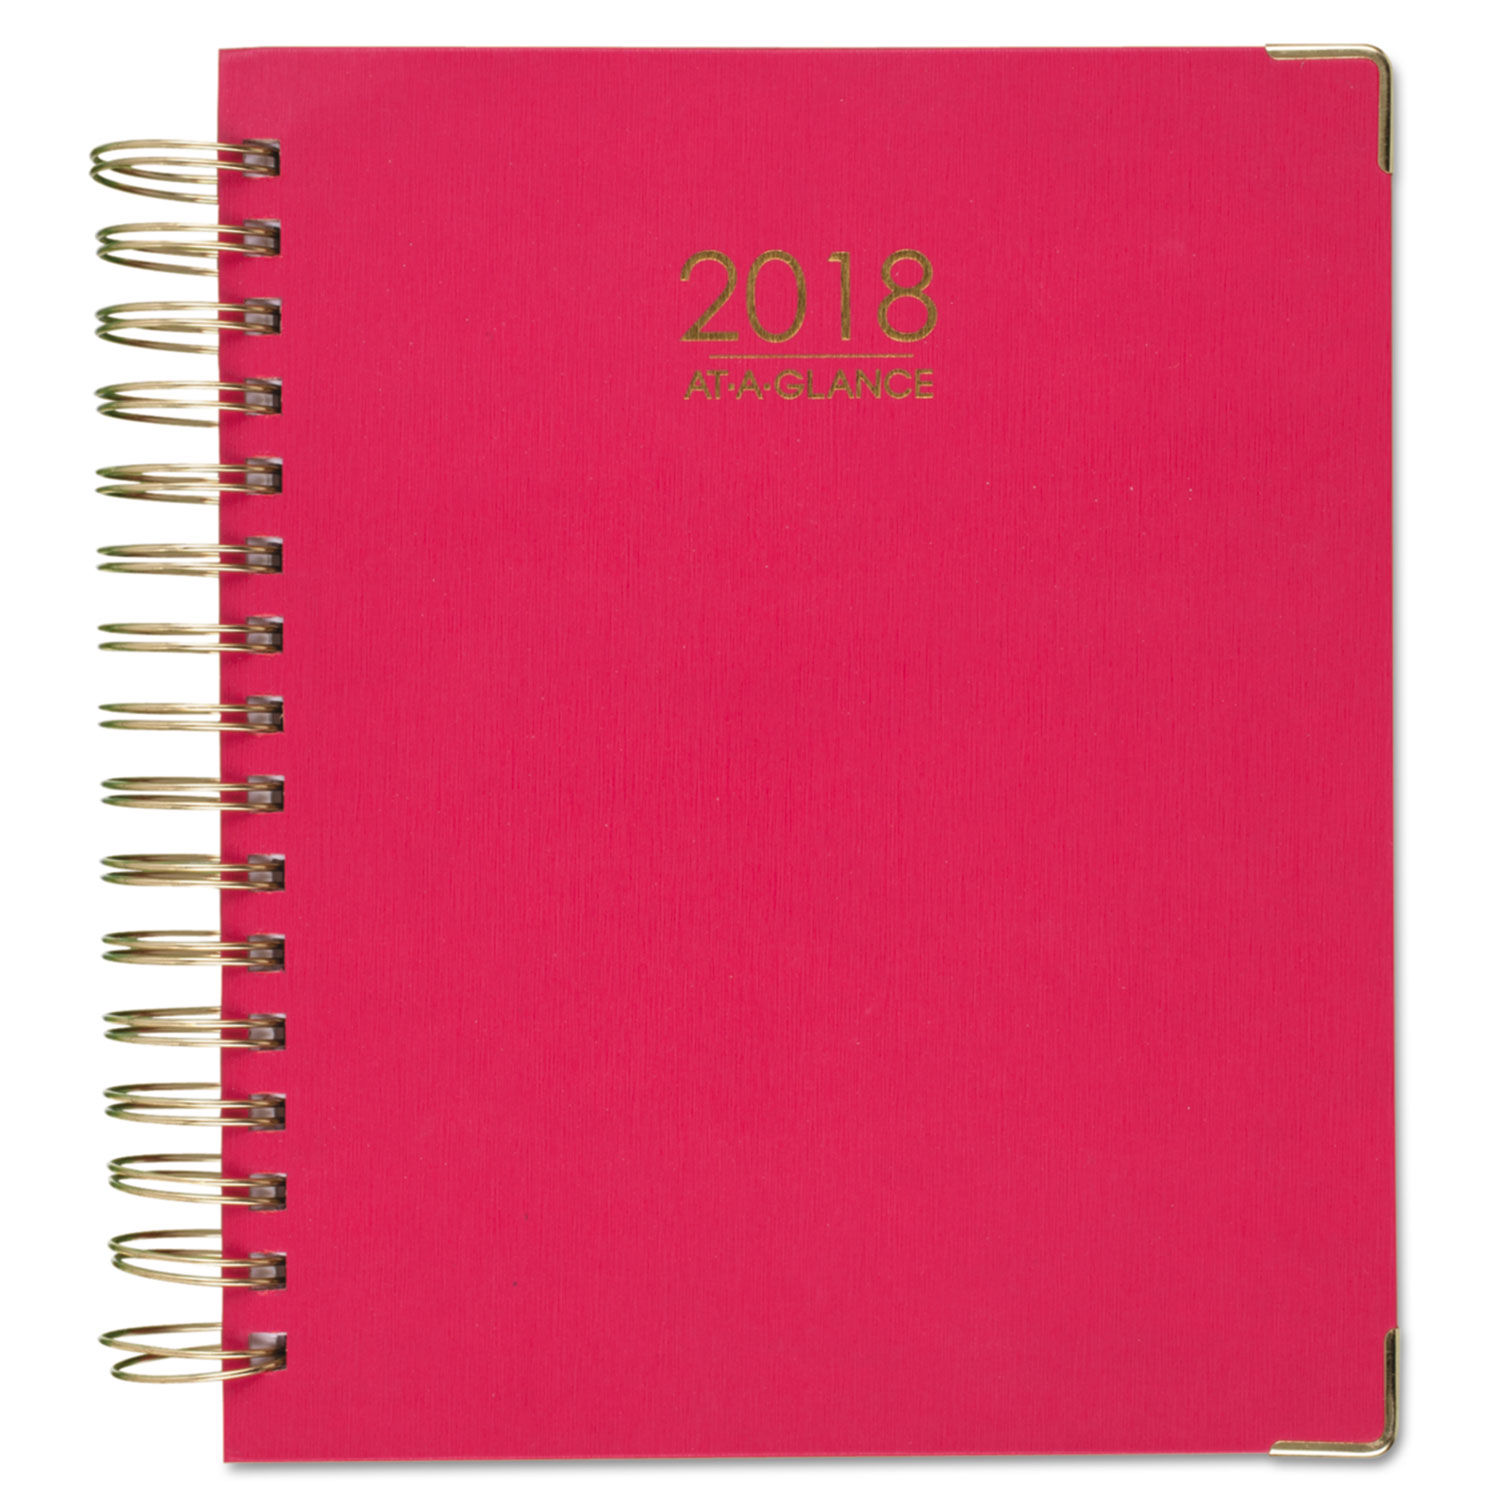 image regarding Hardcover Daily Planner known as Everyday Hardcover Planner, 8 3/4 x 6 7/8, Purple